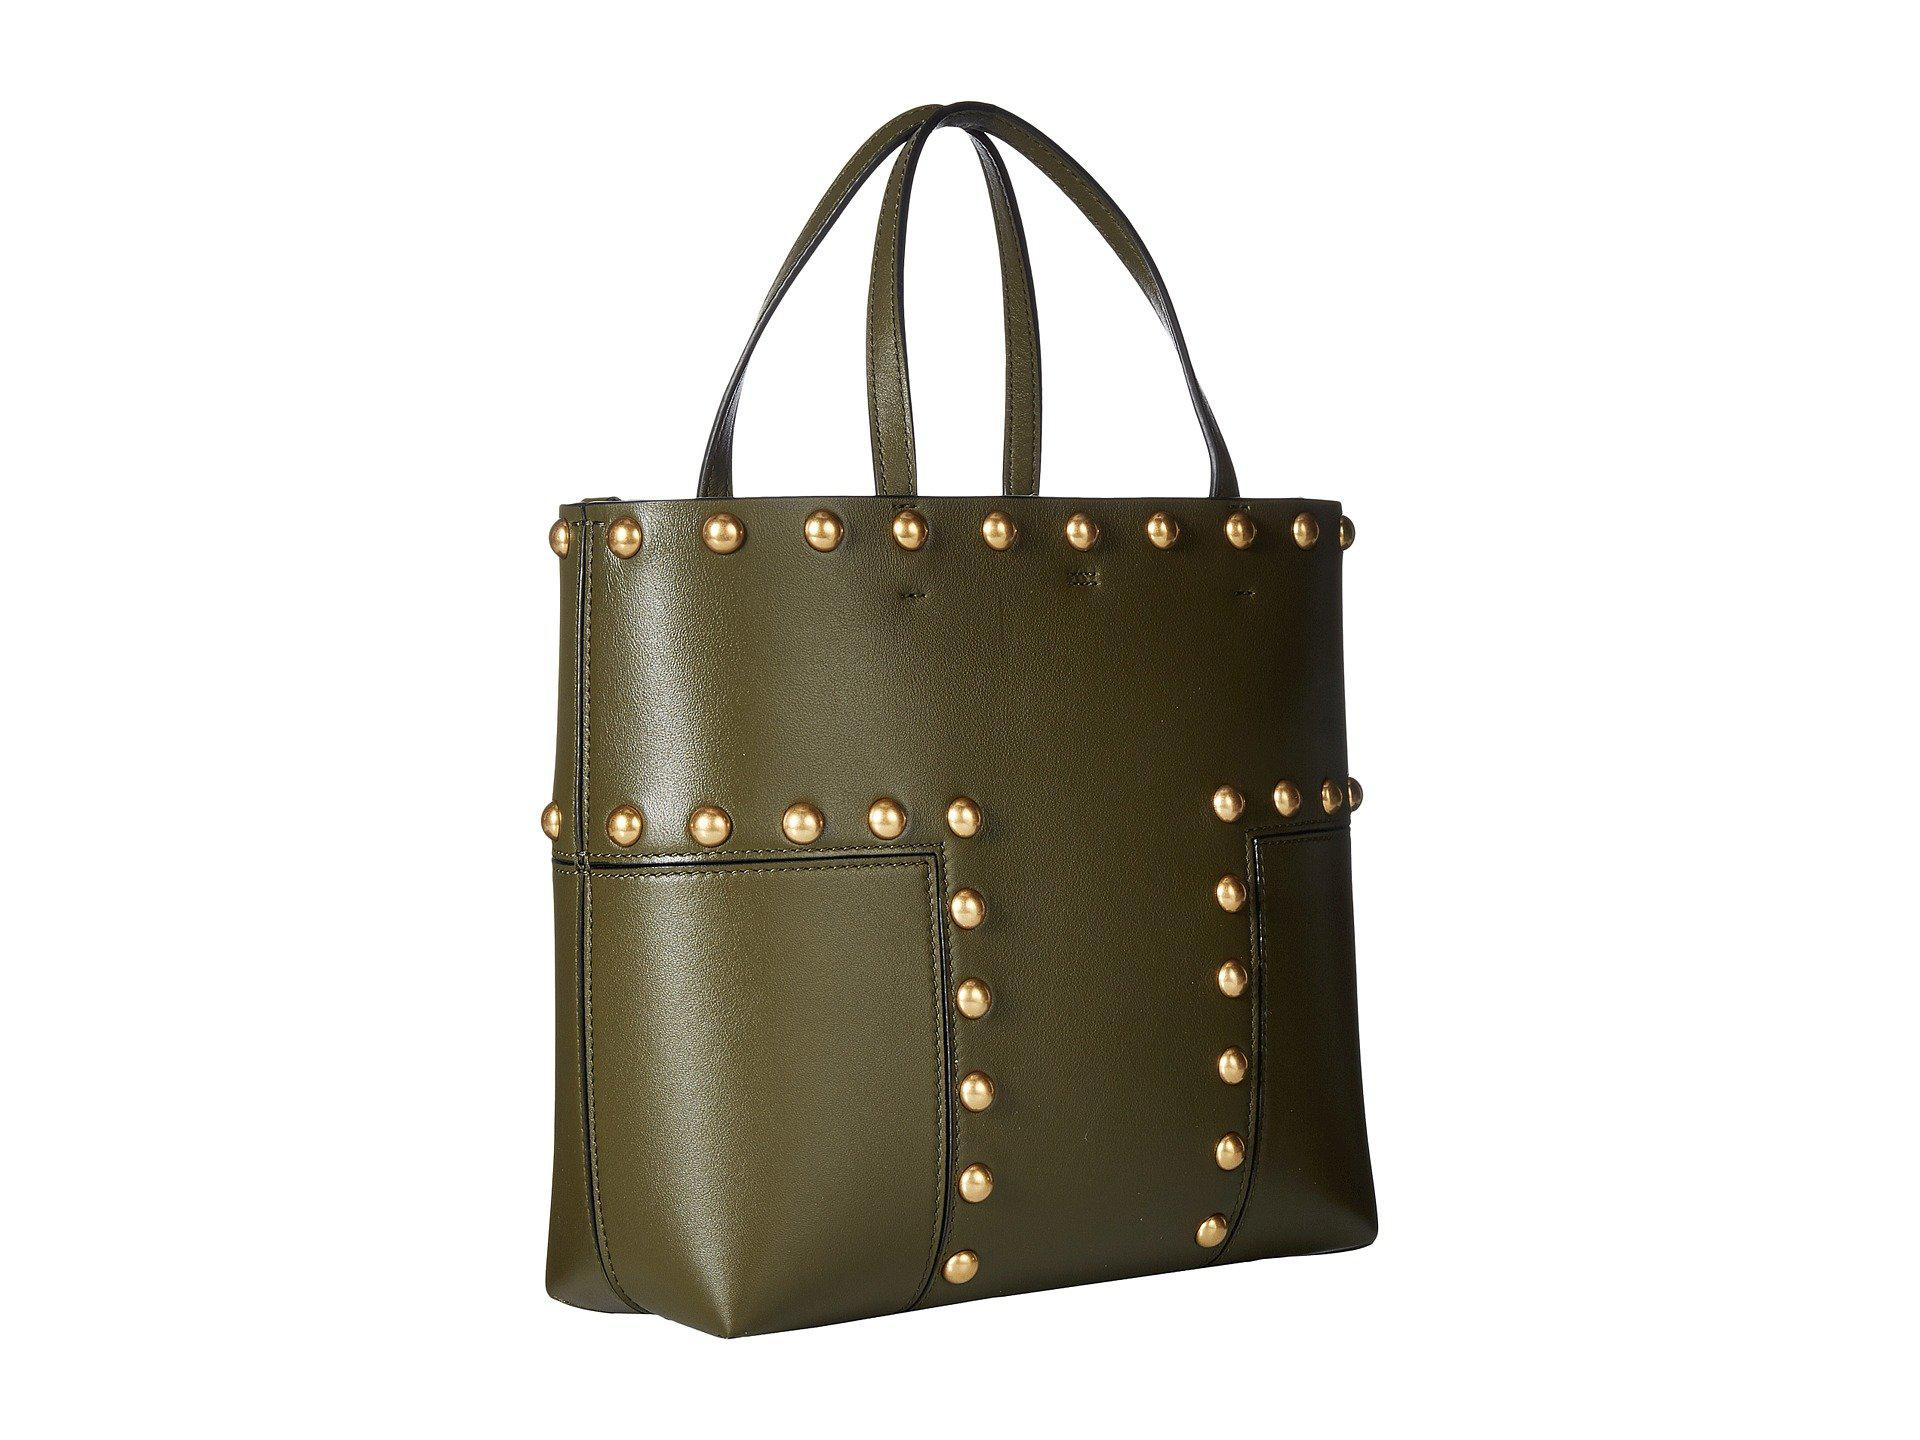 9ada115069b Lyst - Tory Burch Block-t Stud Mini Tote in Green